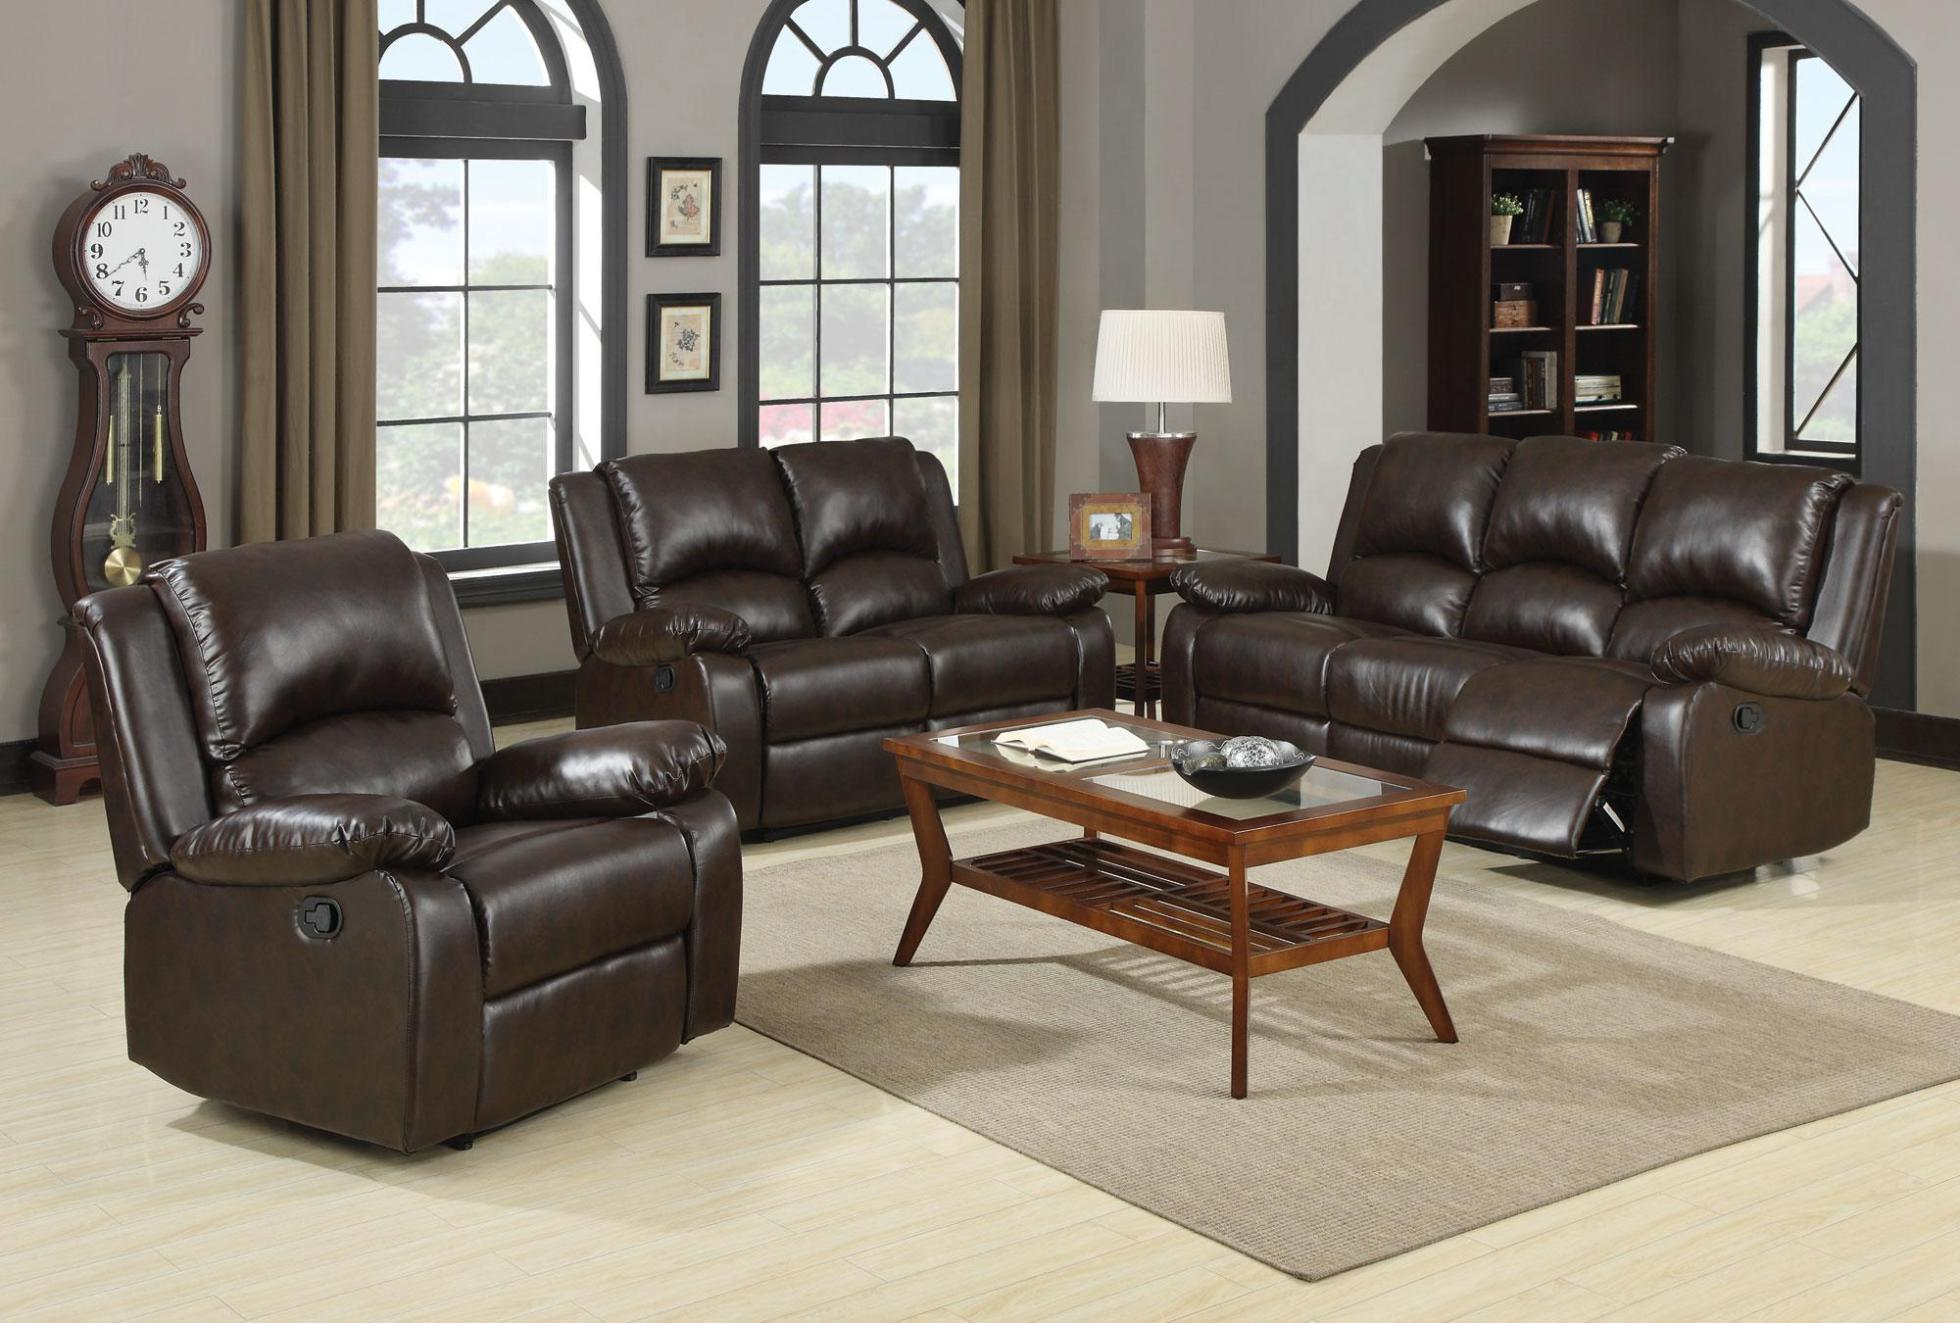 Image of: Leather Reclining Sectional Sofa